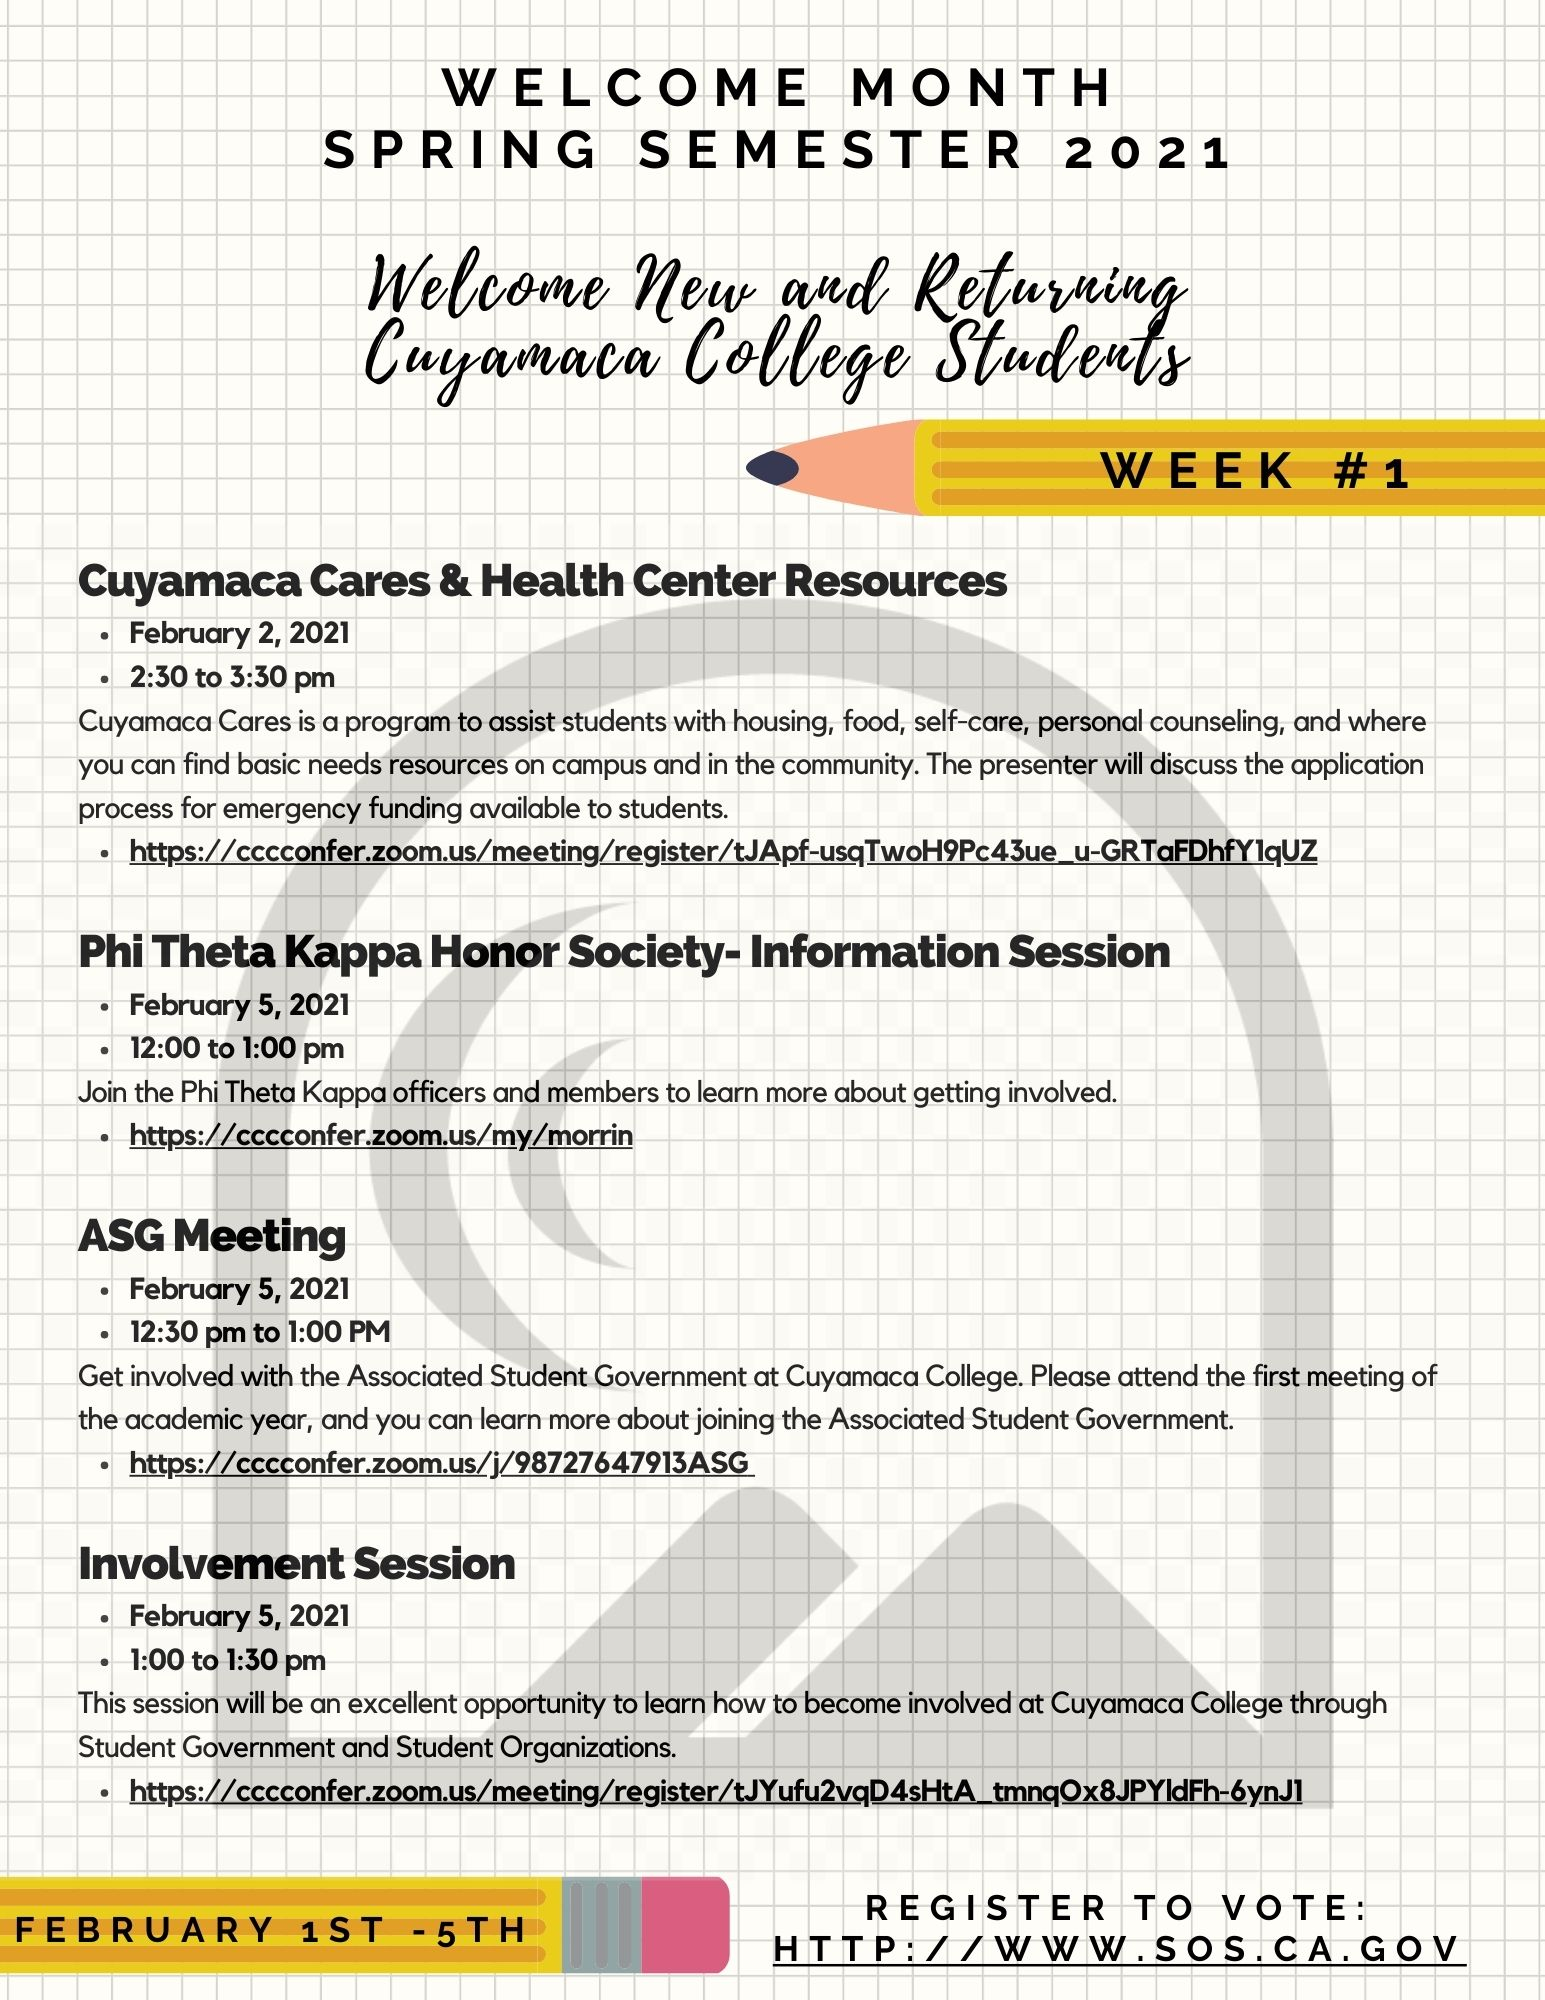 Welcome Month Week 1